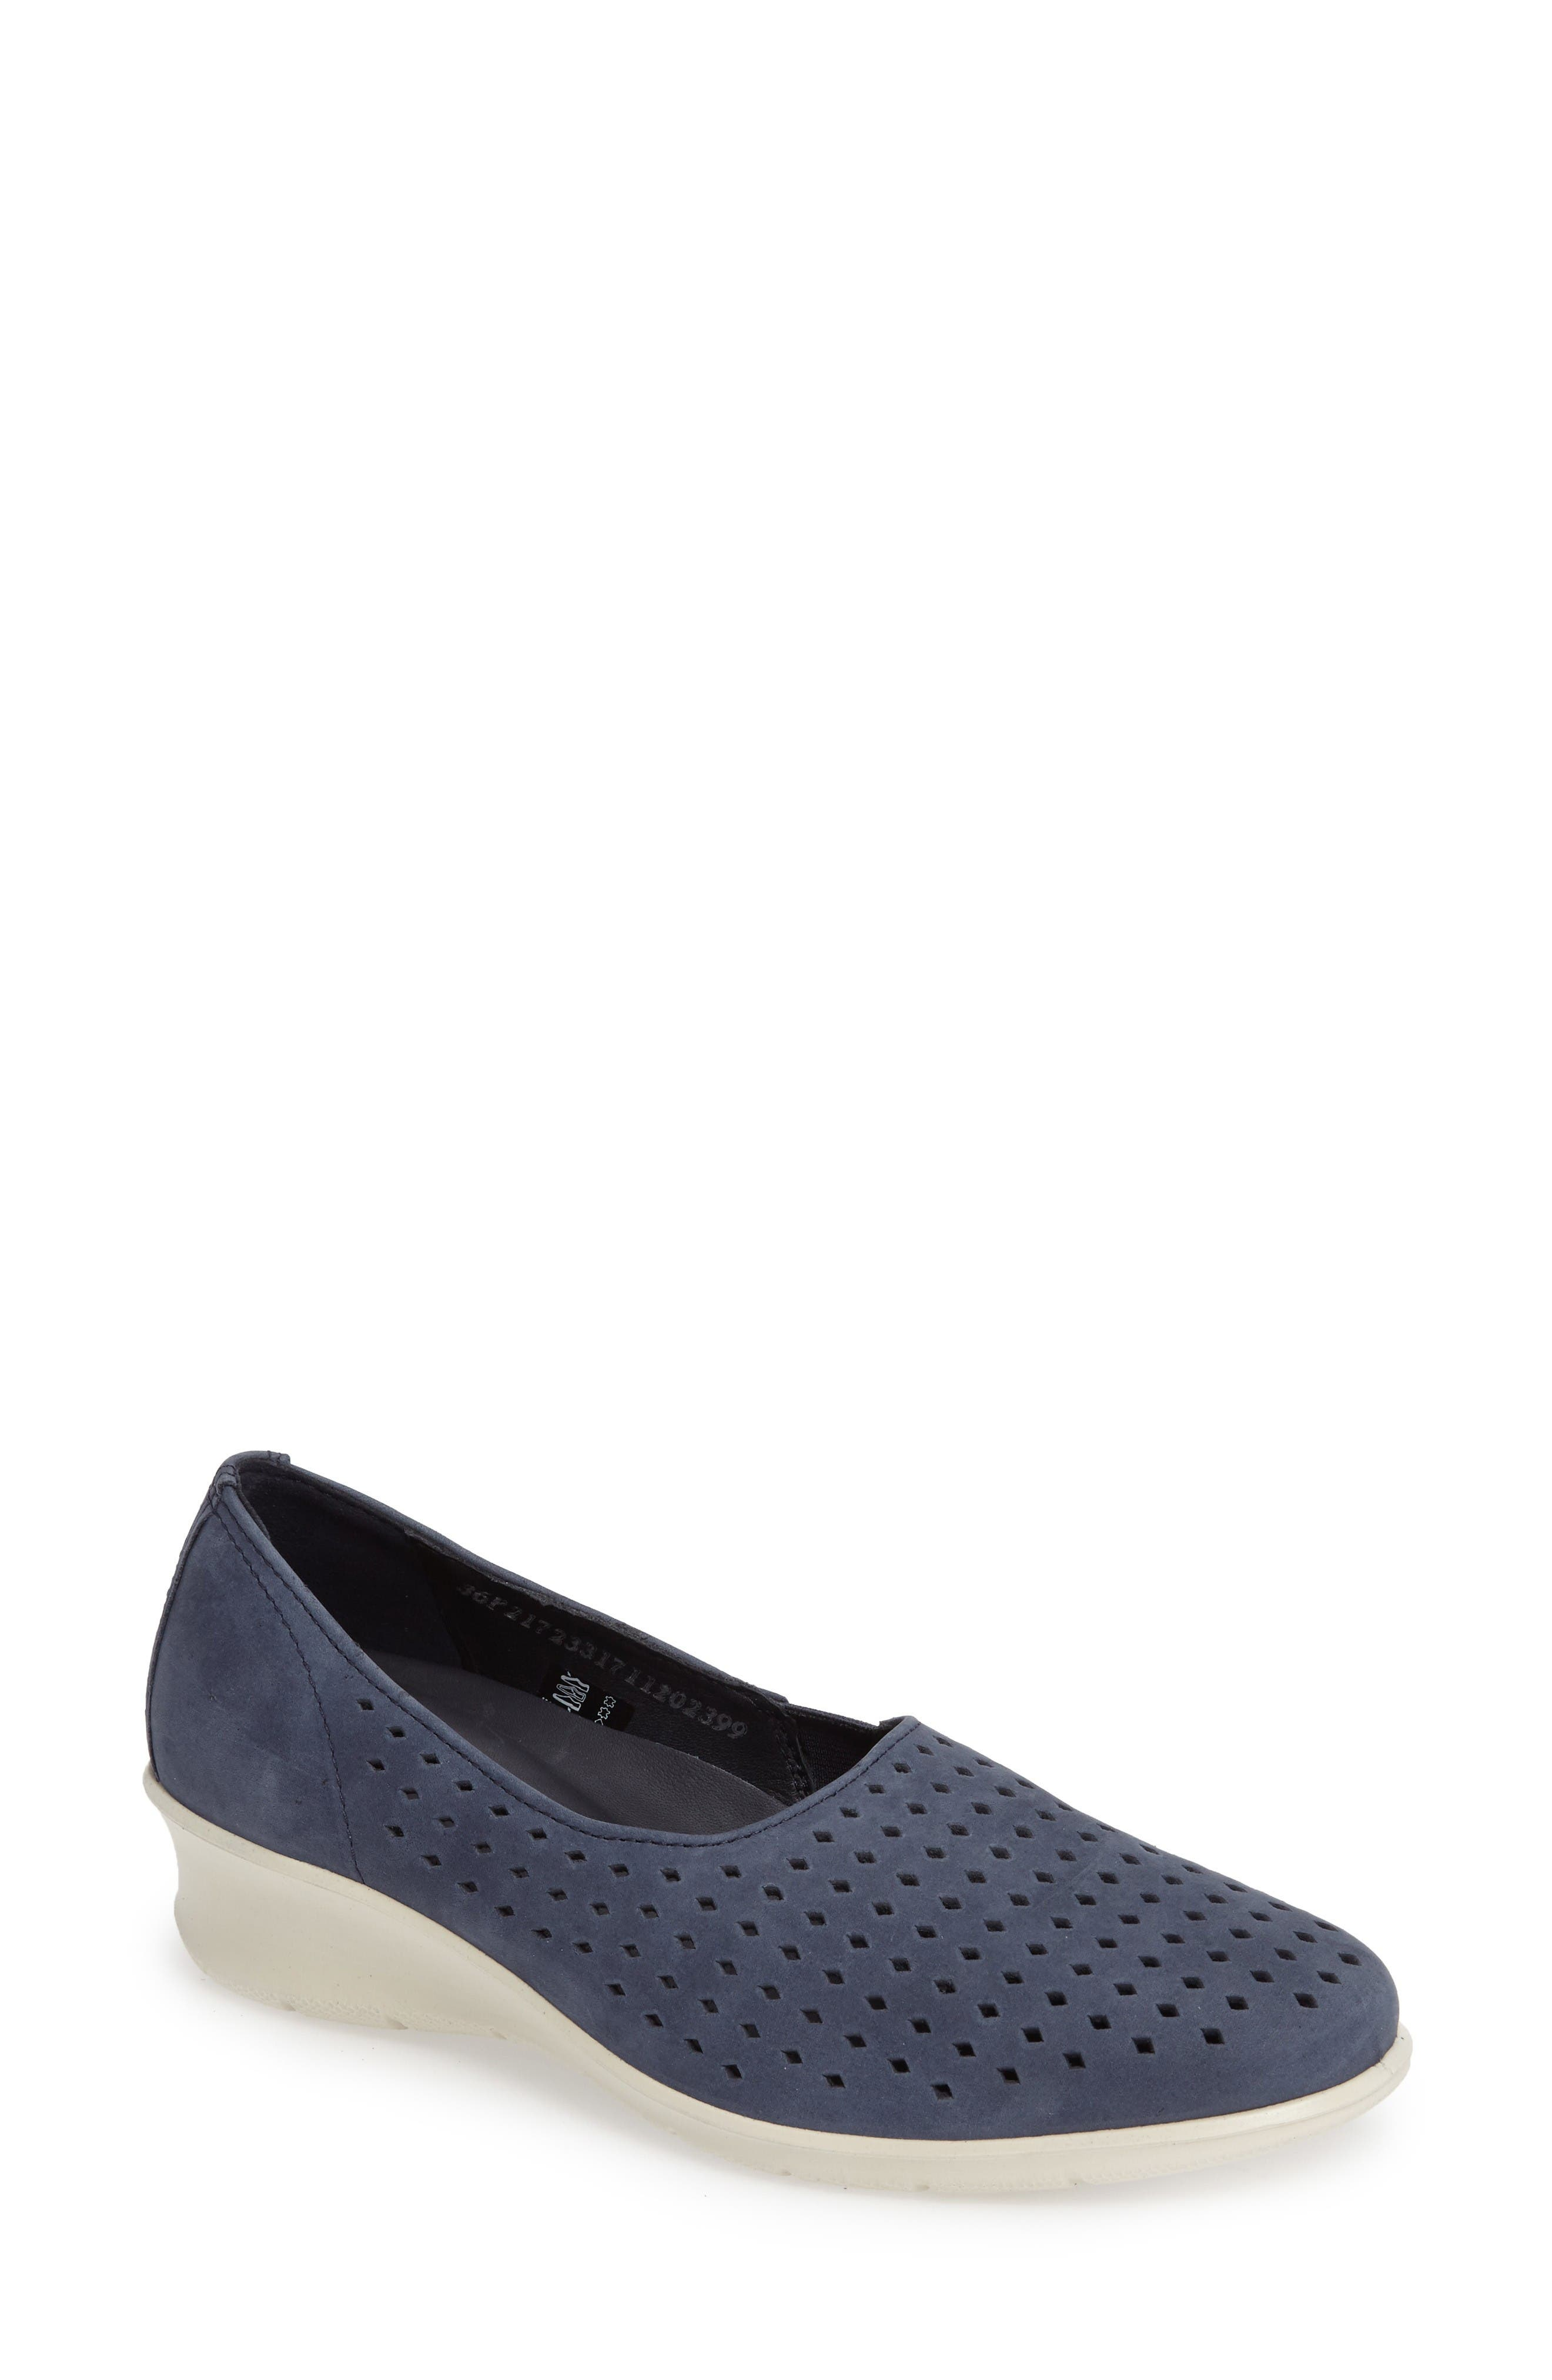 ECCO Felicia Summer Loafer (Women)